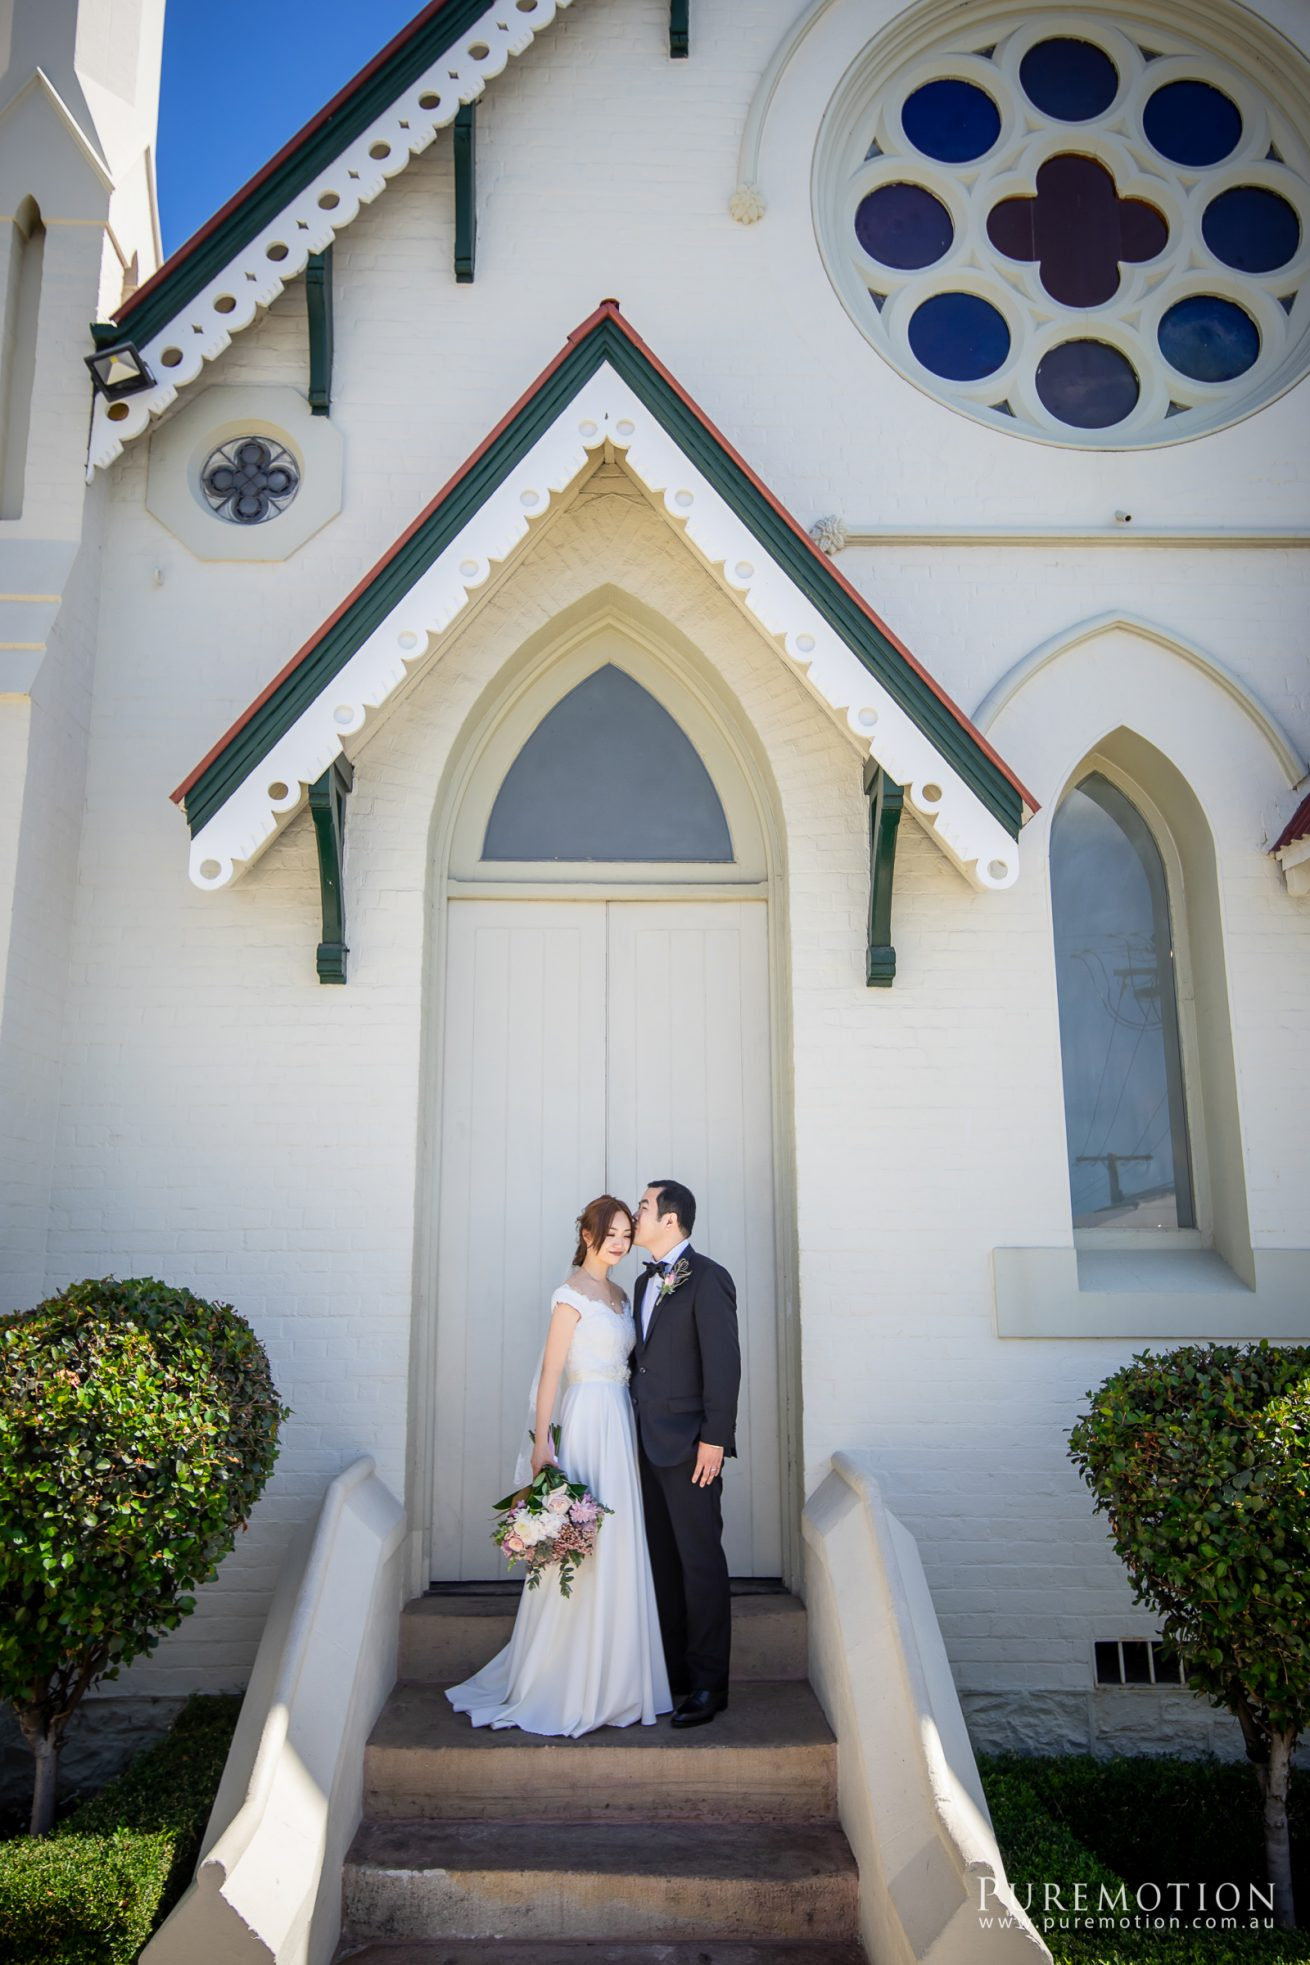 190309 Puremotion Wedding Photography Brisbane Alex Huang AngelaSunny_Edited-0082